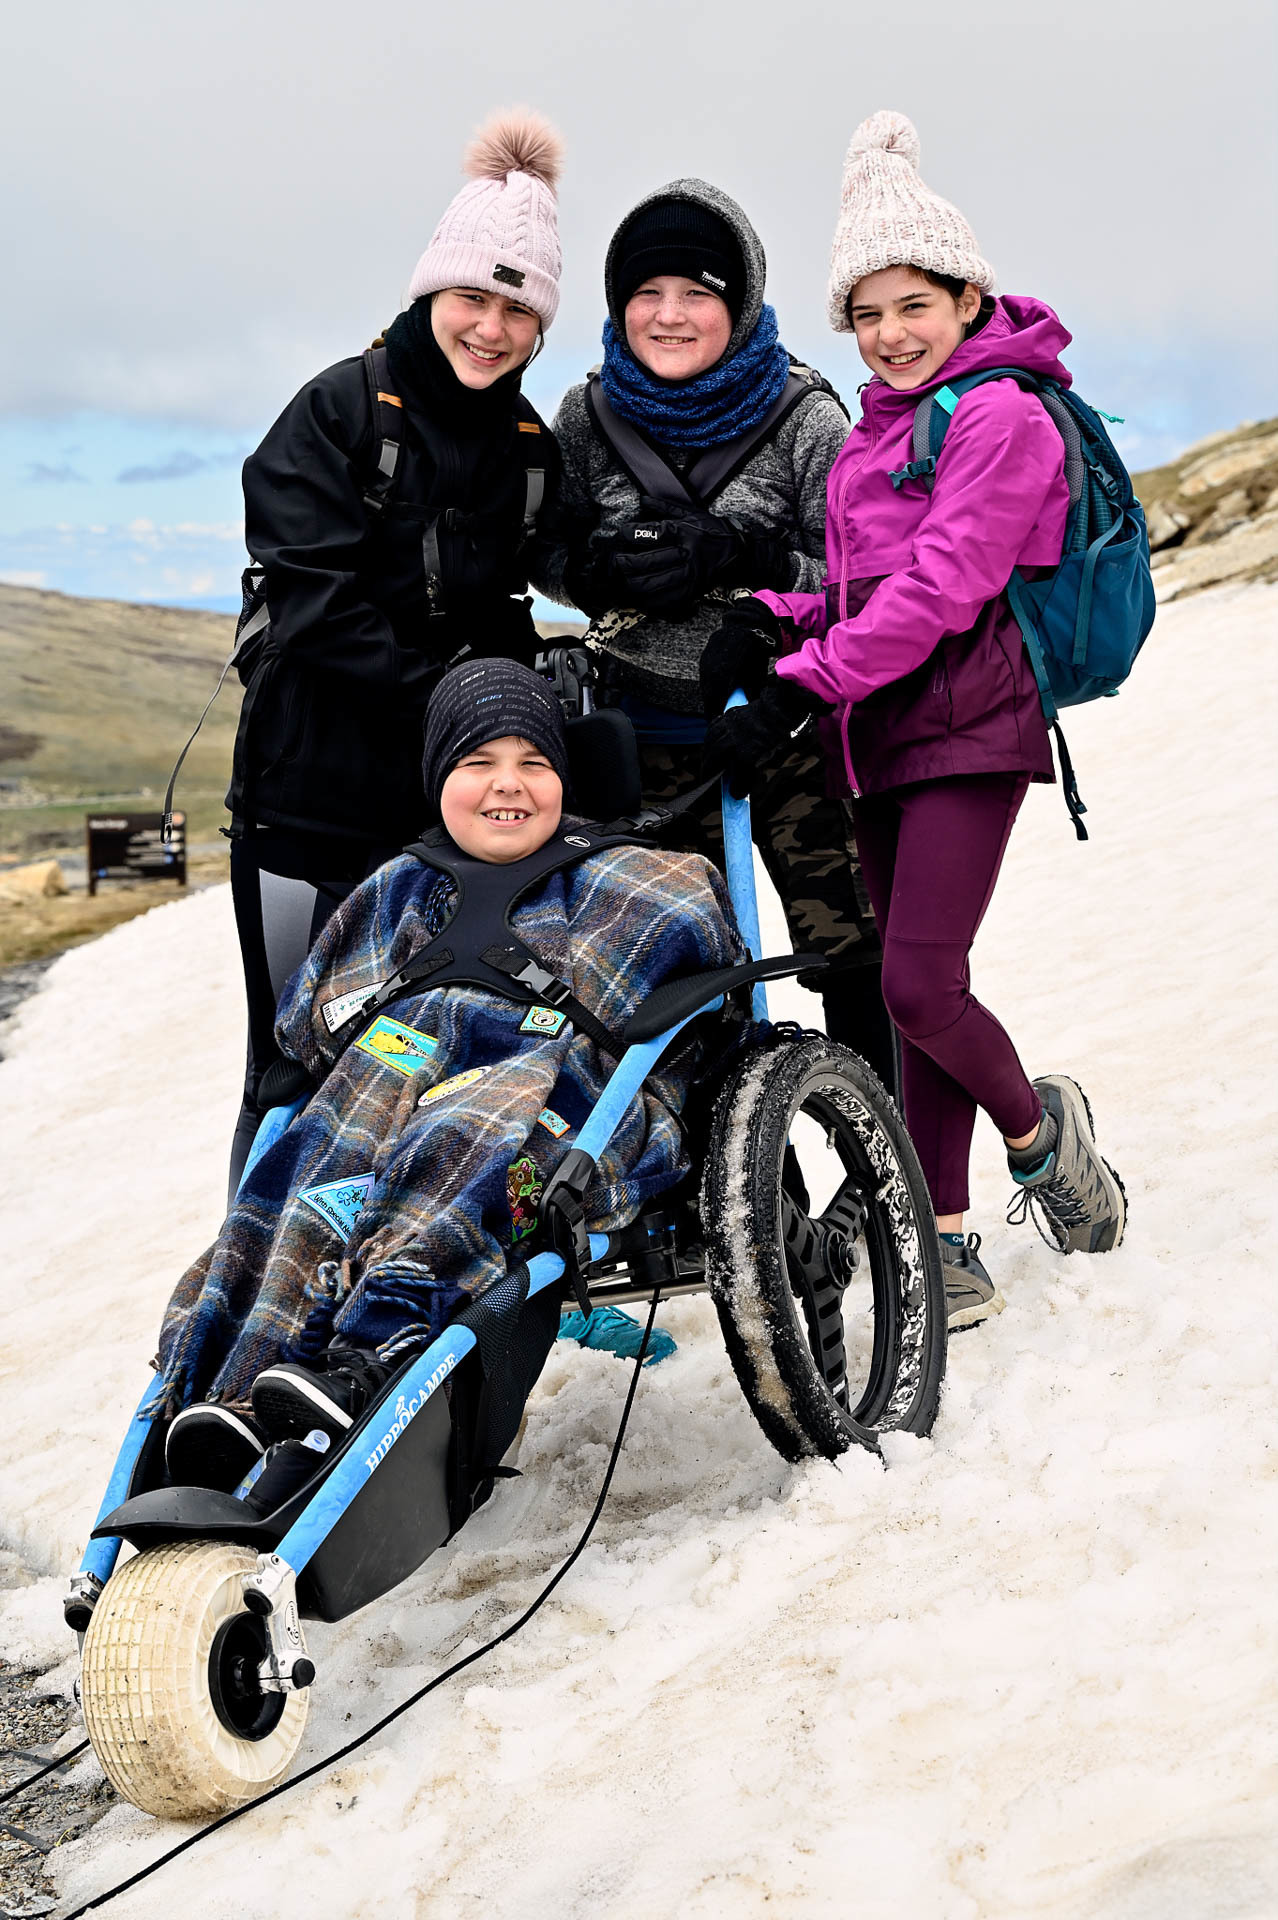 Josh, his sister and cousins the novelty of a play in the snow, 4 Ideas for Accessible Adventures in NSW, joe kennedy, kosciuszko national park, summit track